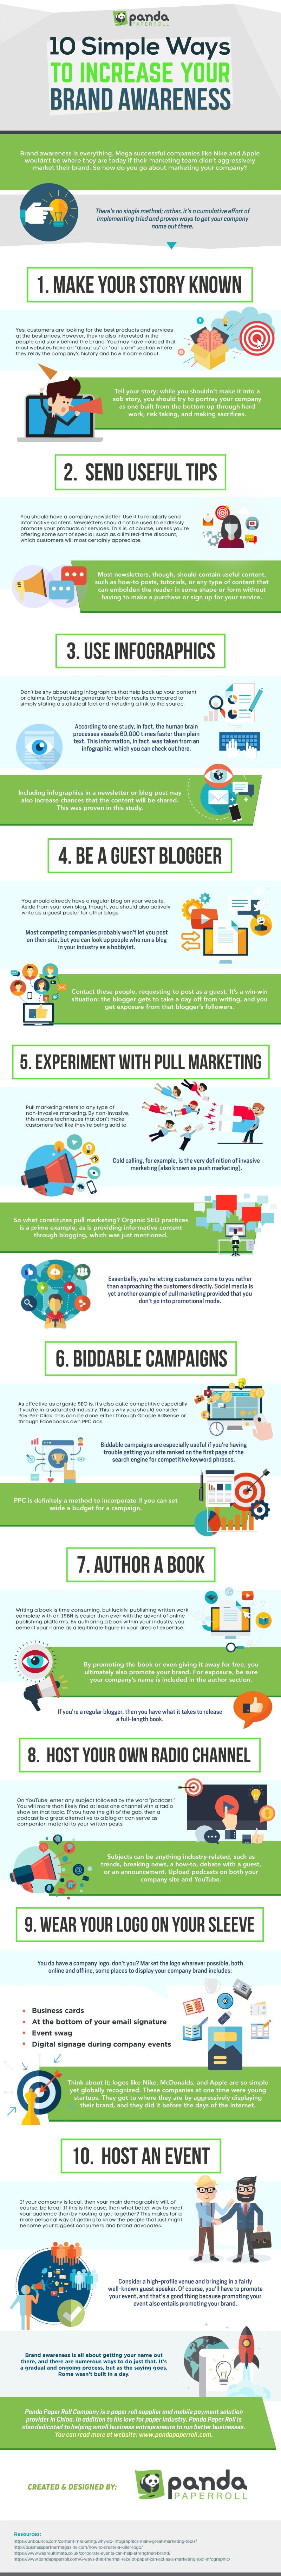 10 Simple Ways to Increase Brand Awareness - #Infographic